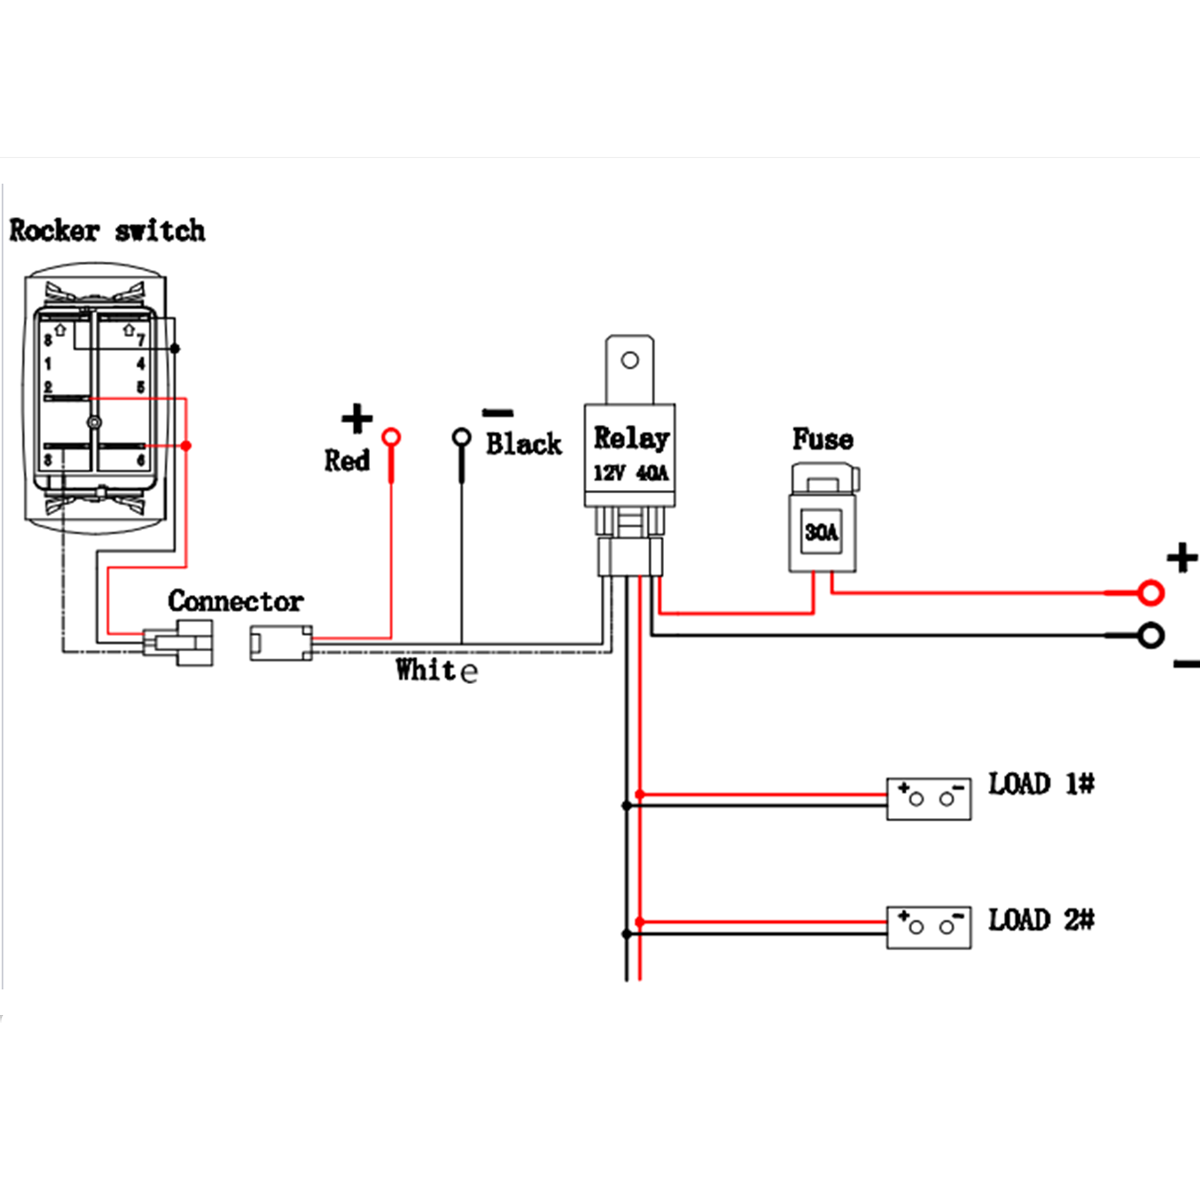 carling toggle switch diagram wiring diagram deback lit rocker switch wiring wiring diagram blog carling on off on switch carling toggle switch diagram